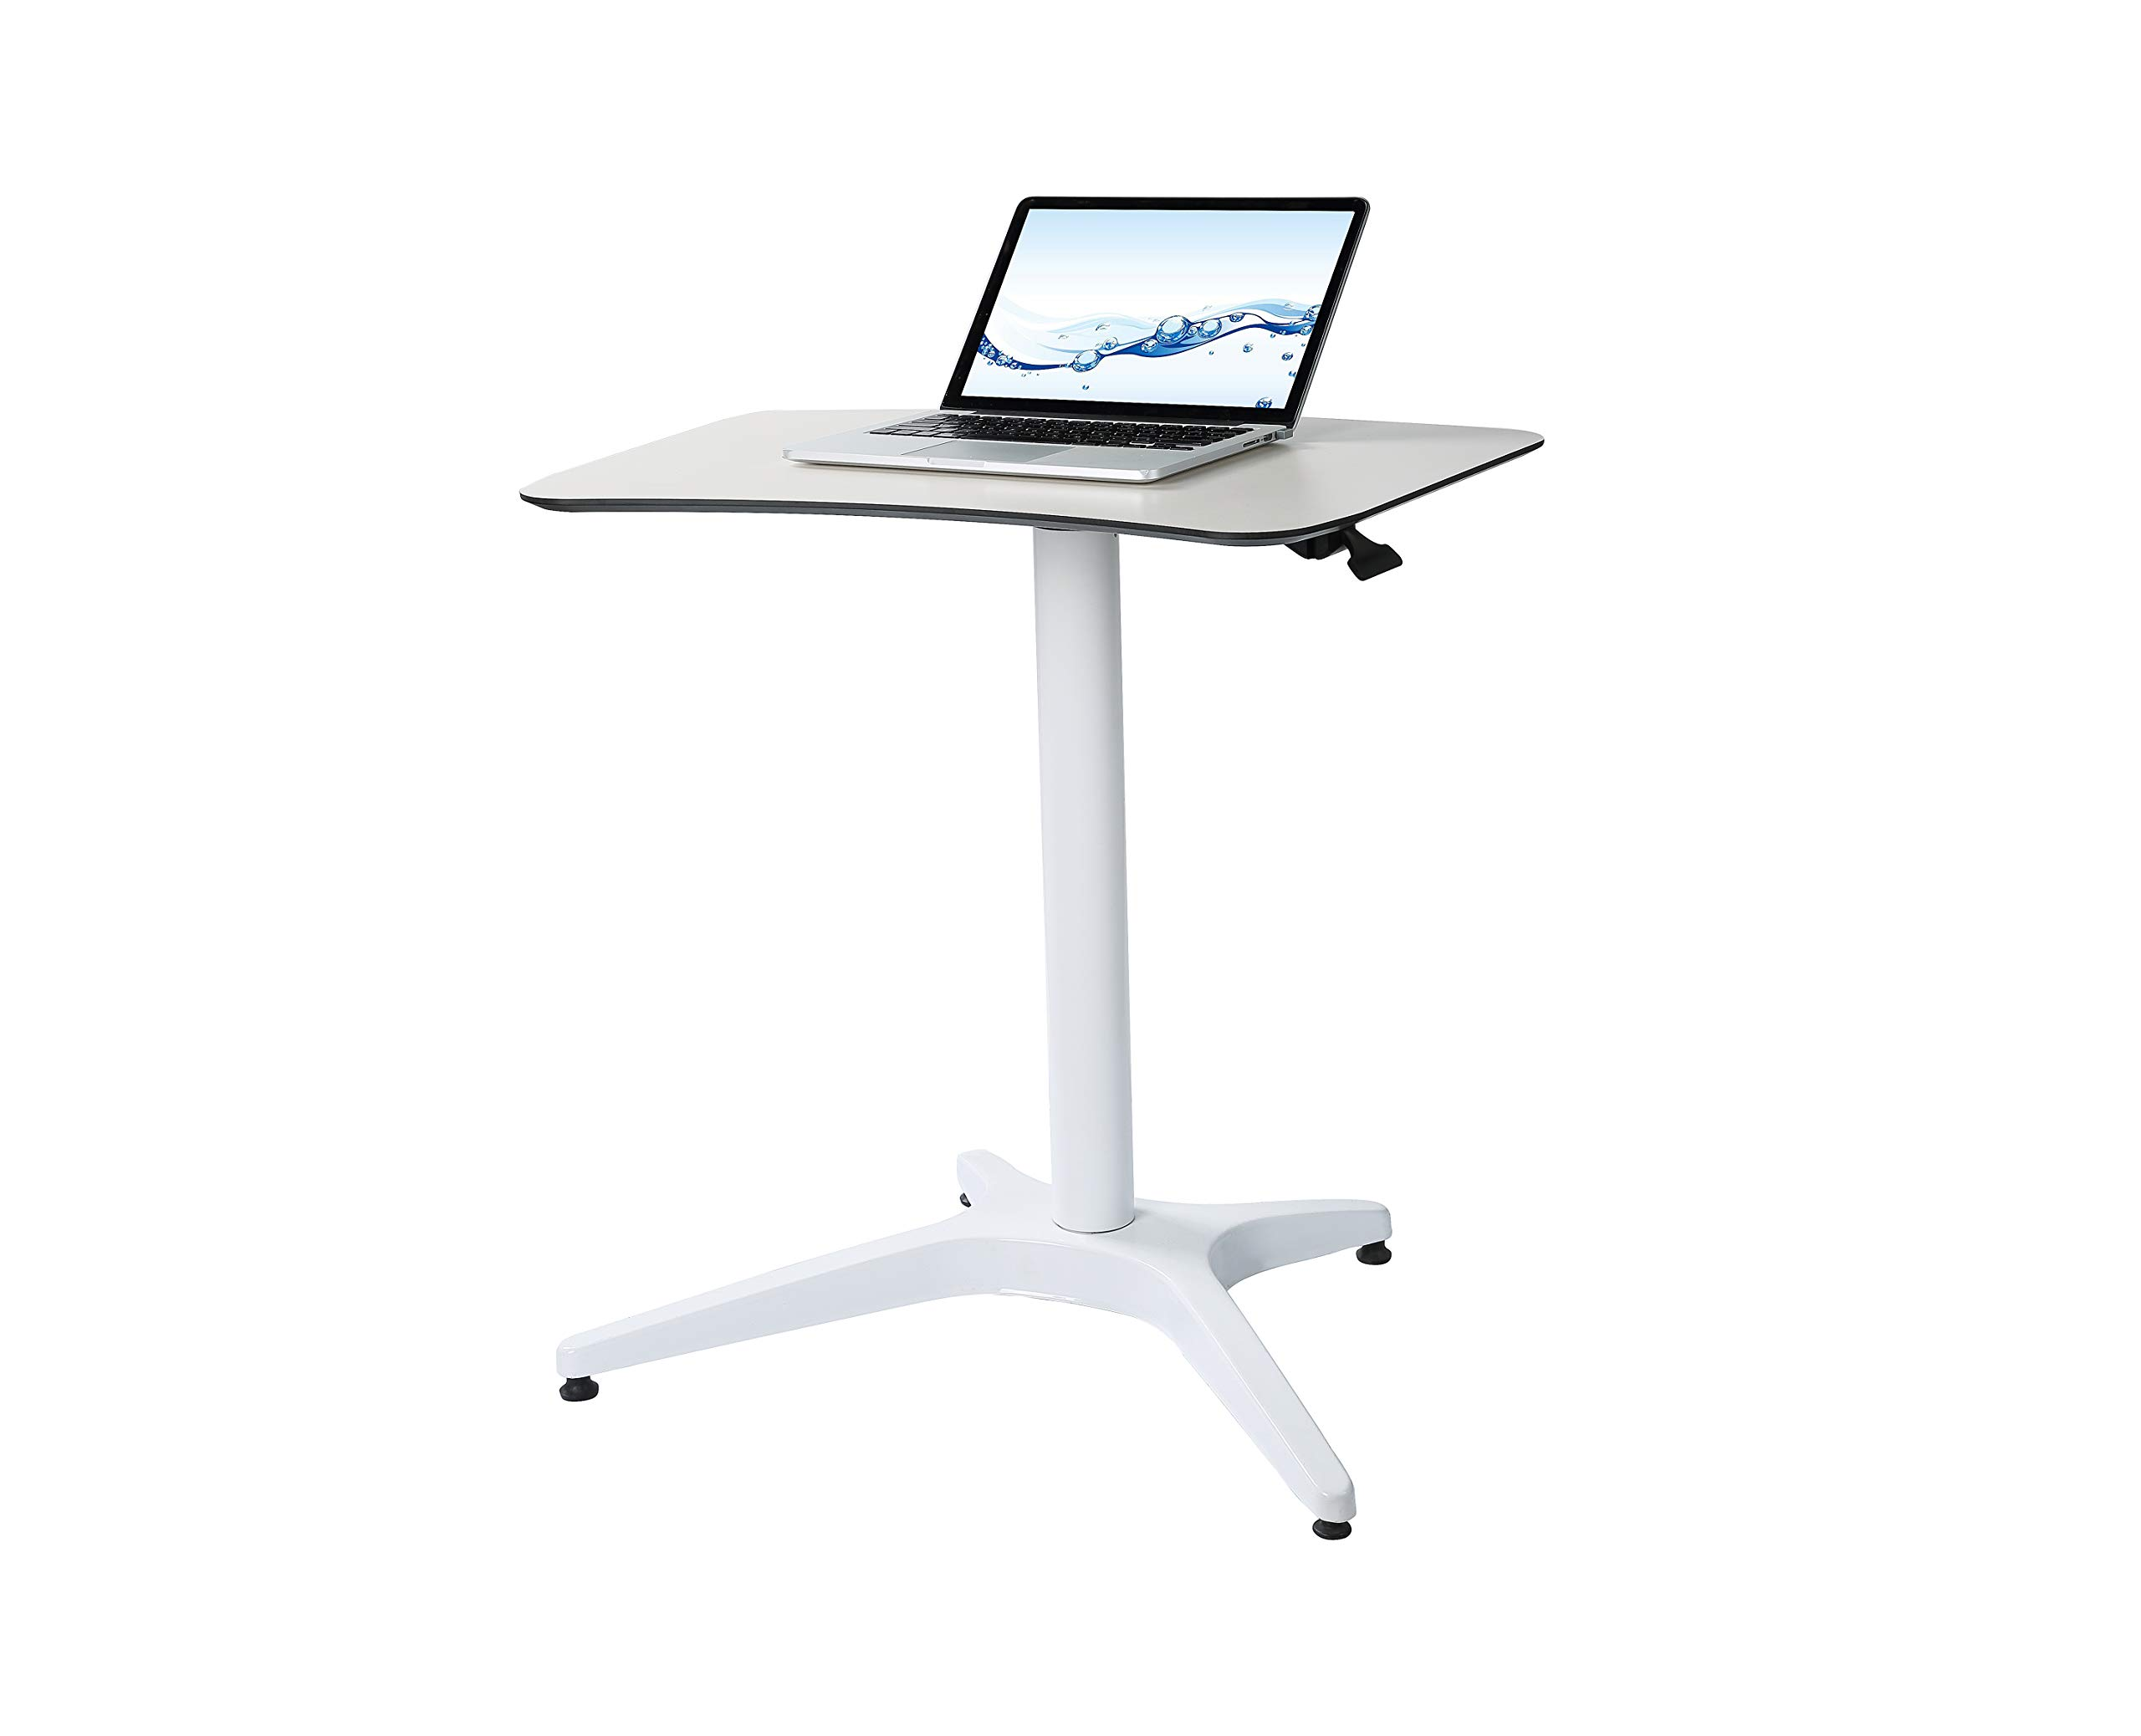 Pneumatic Adjustable Height Laptop Desk, Sit and Stand Mobile, Ergonomic Design, Excellent Lectern for Classrooms, Offices, and Home! Cartmay(White)